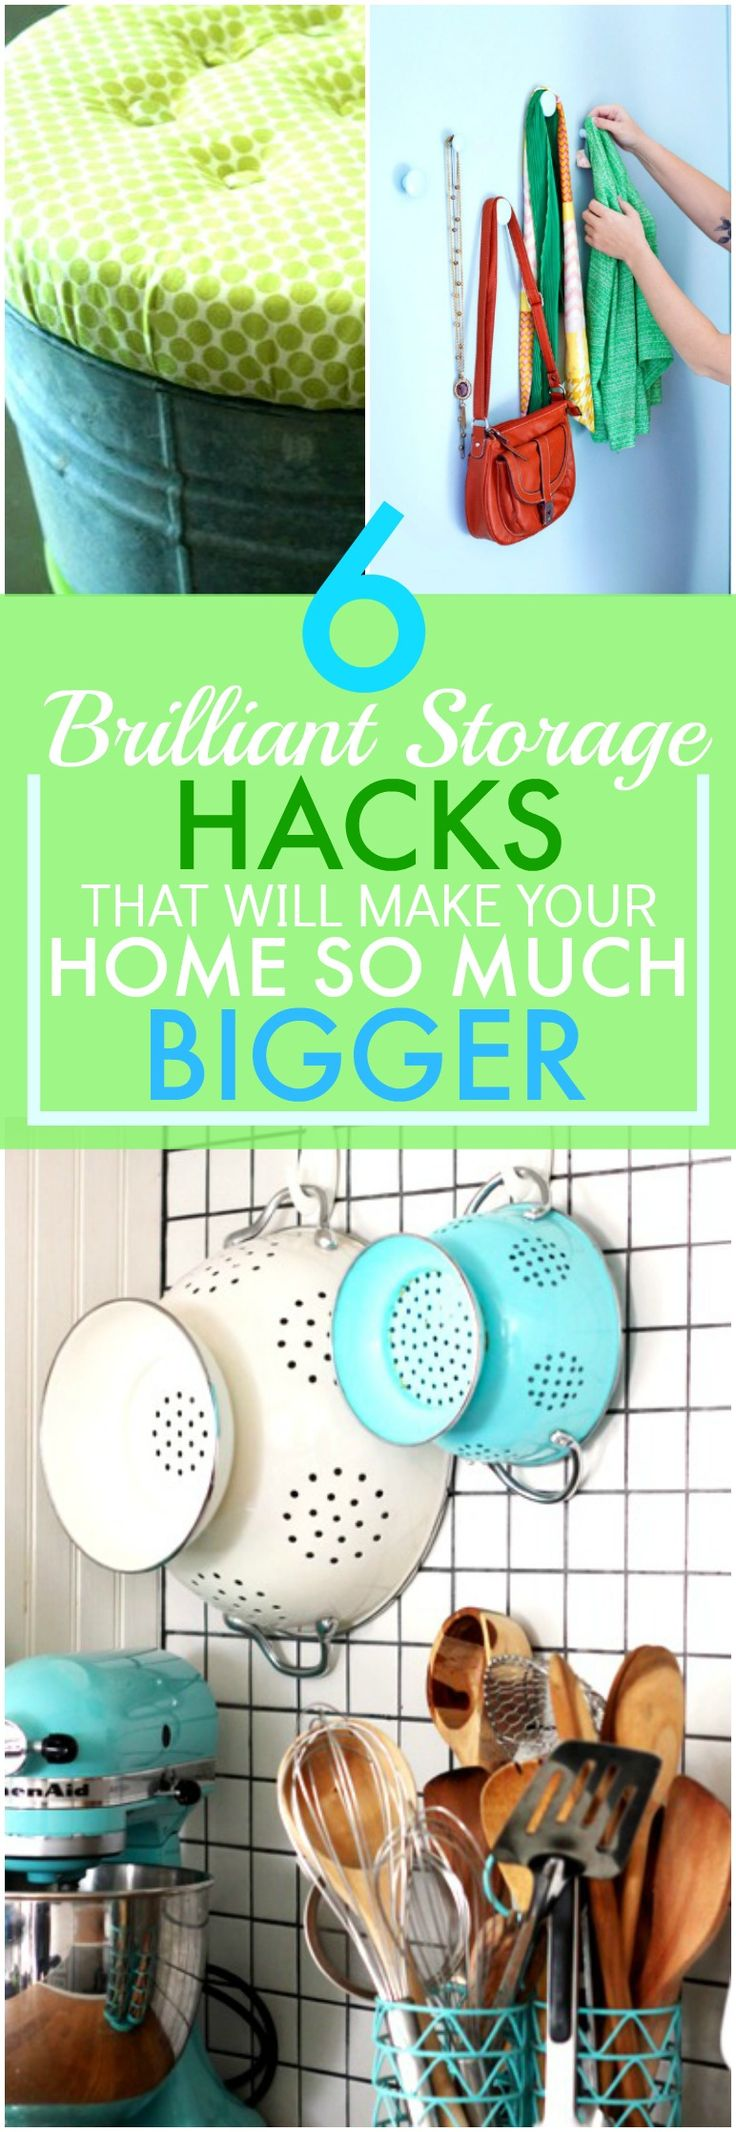 These 6 brilliant storage ideas have made my home look A TON bigger! I'm so glad I found this GREAT post! I found a ton of great resources and now I don't feel so cramped in my small space. SO pinning for later!